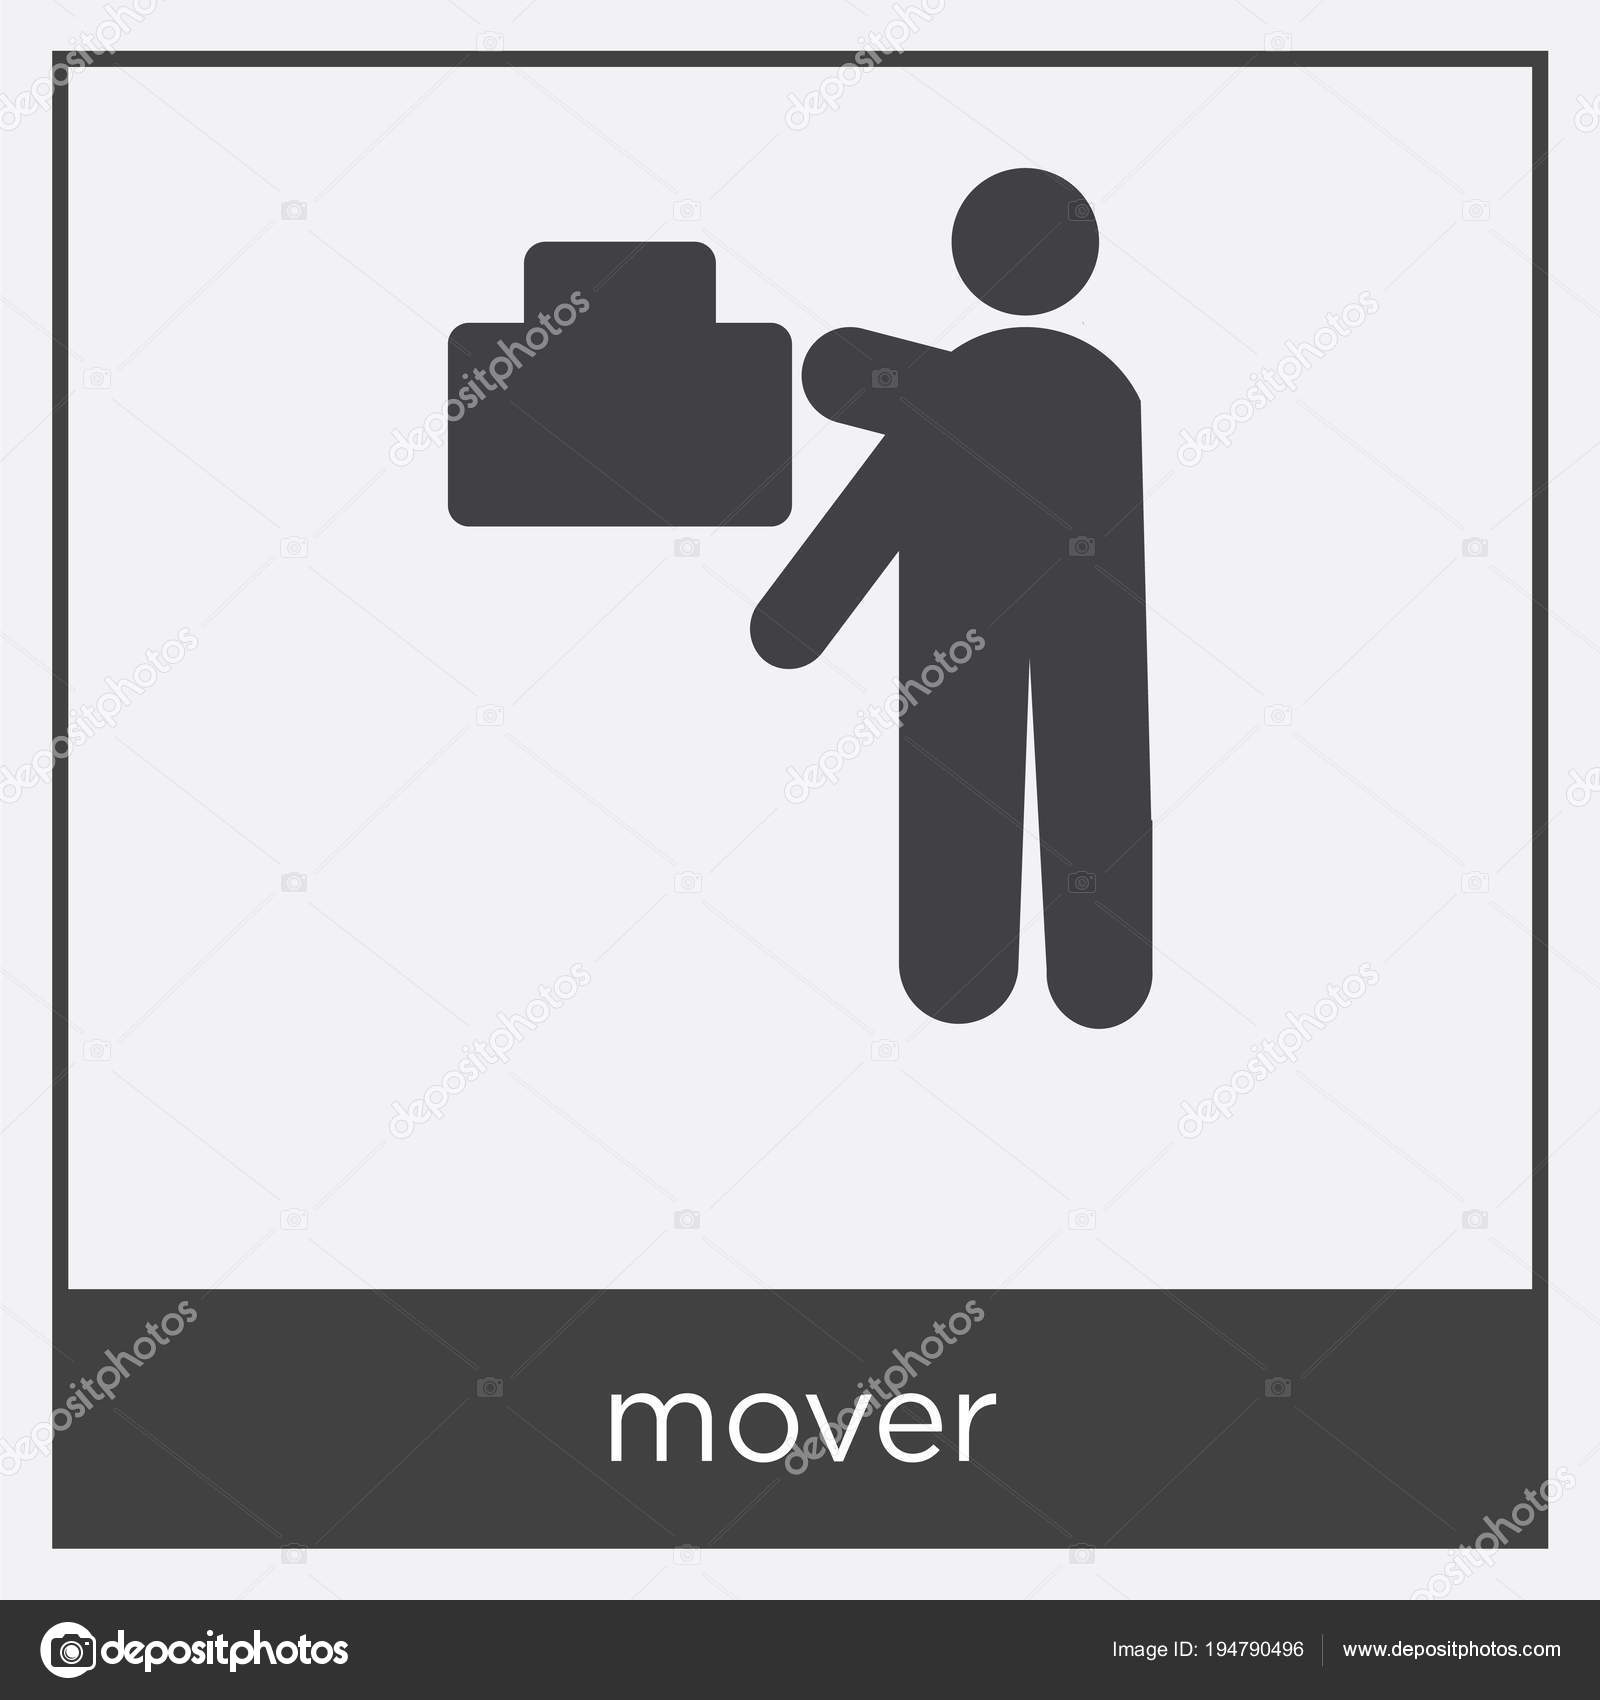 mover icon isolated on